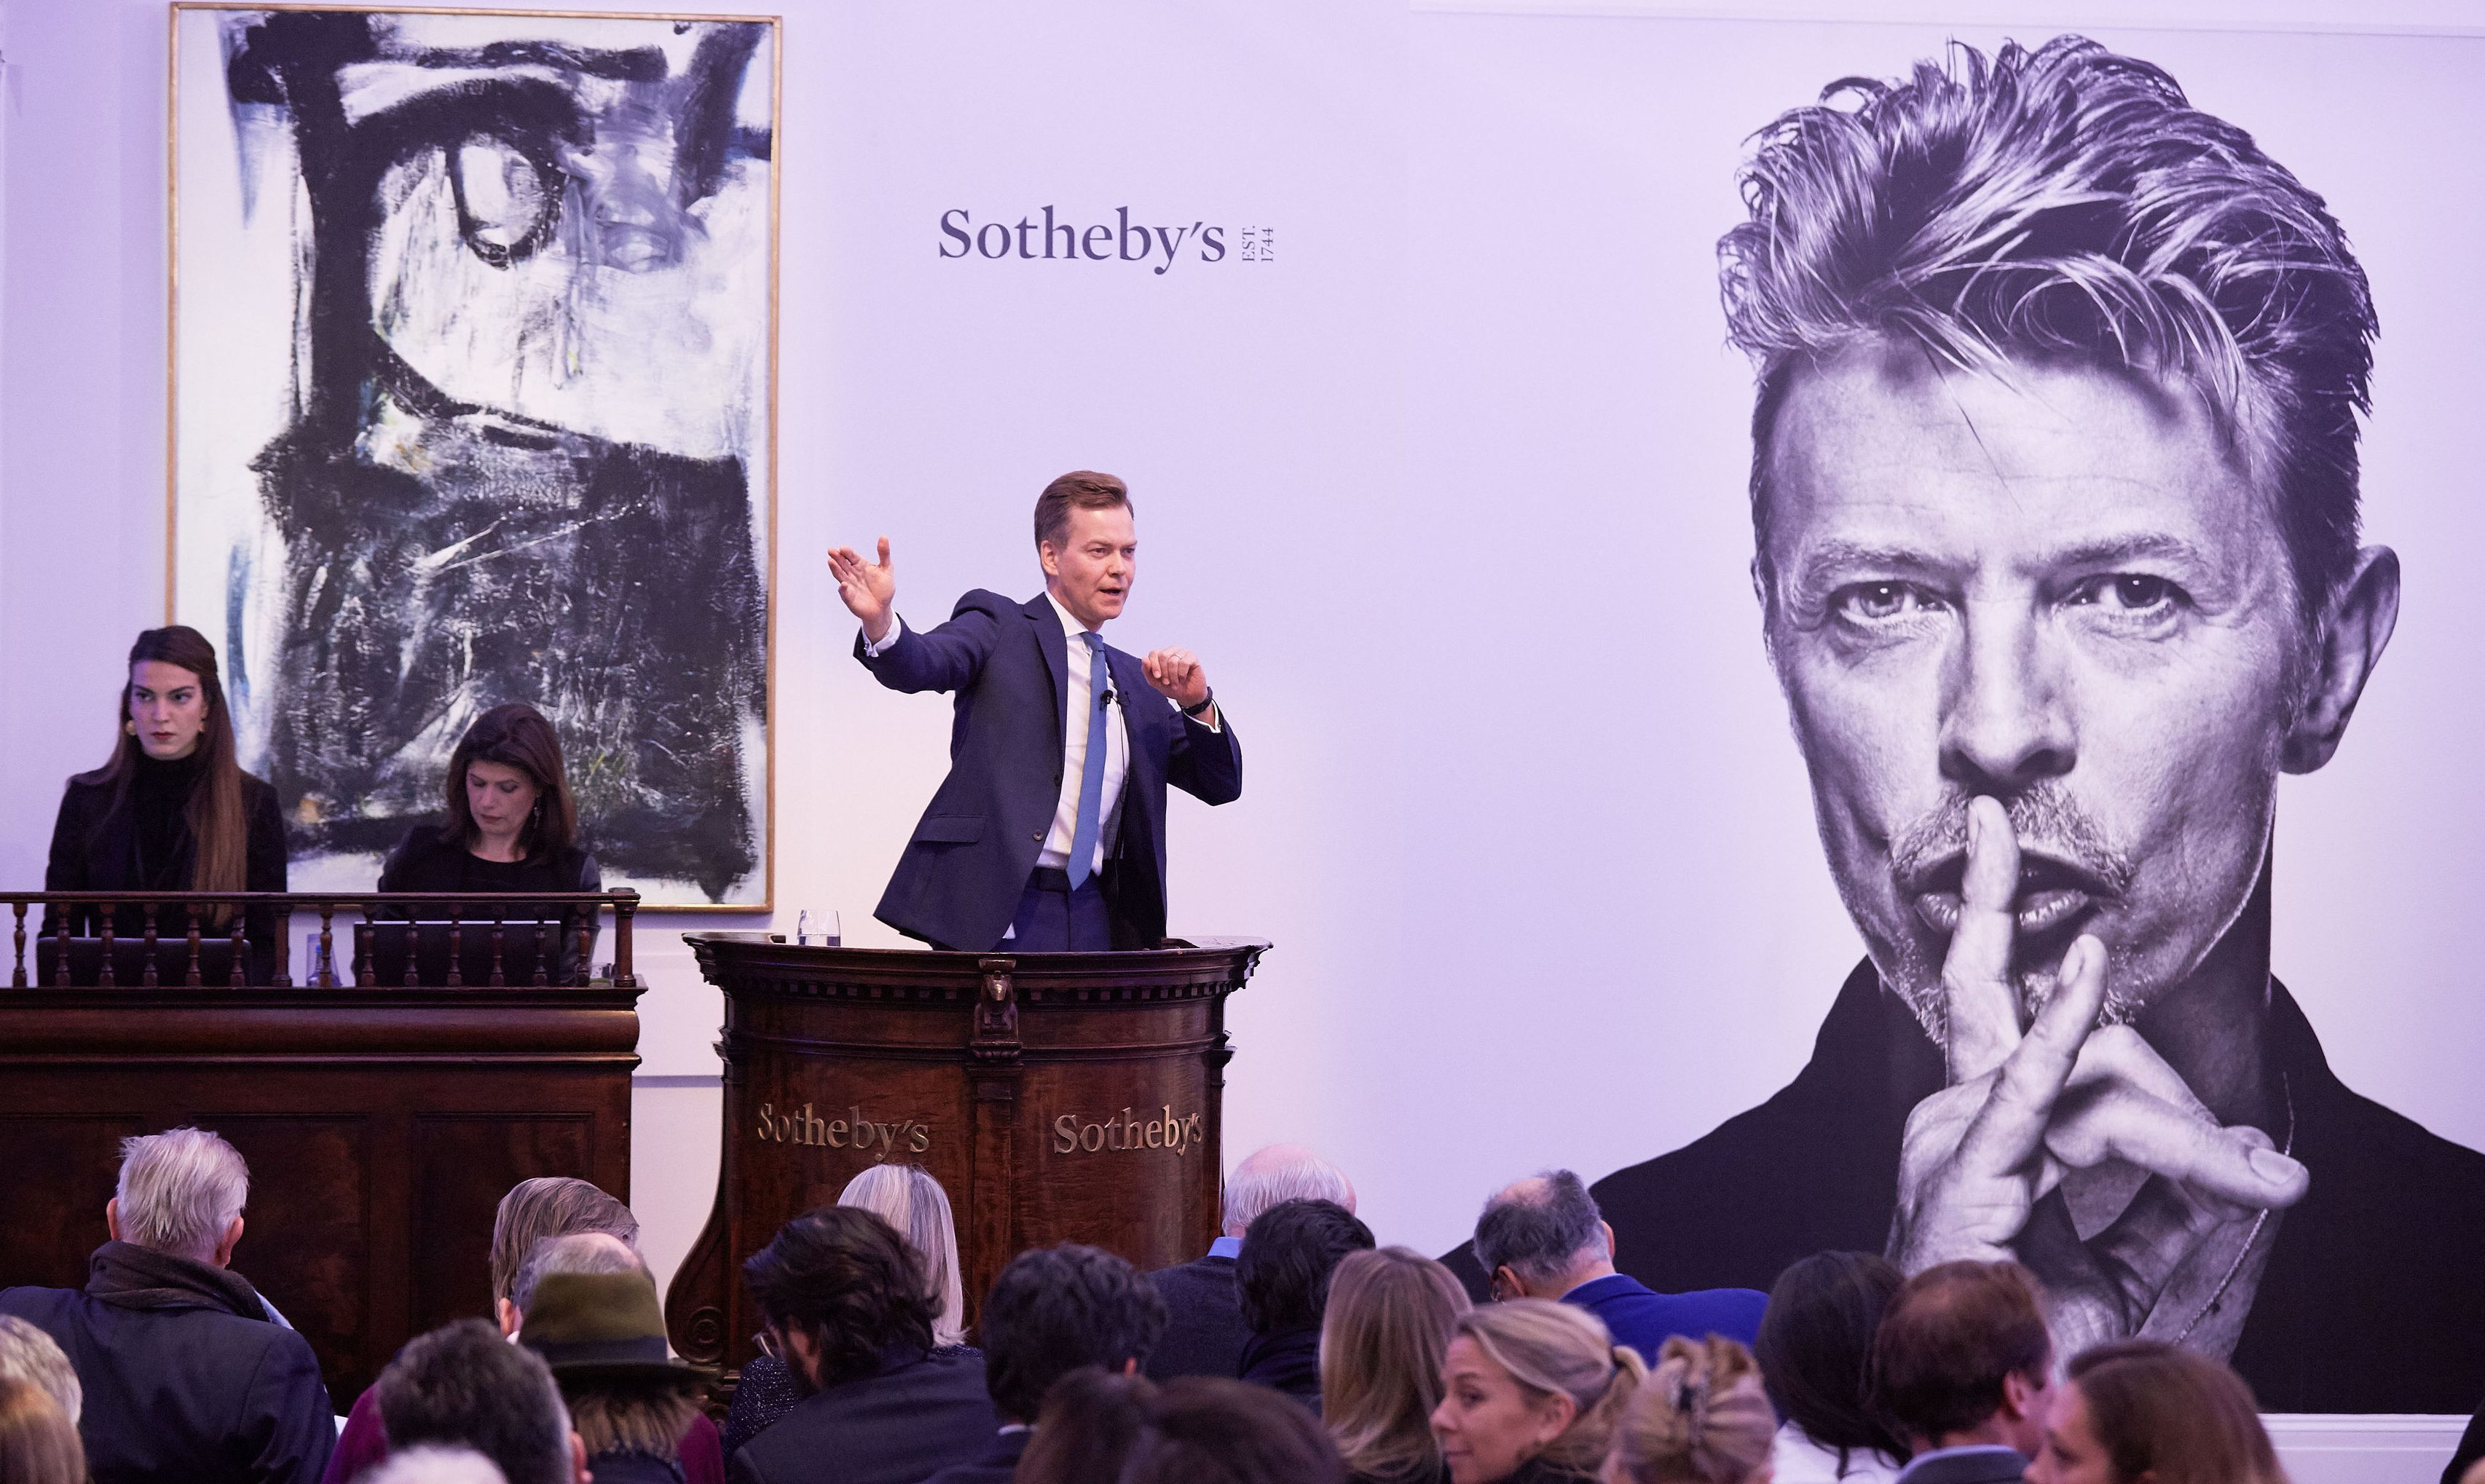 David Bowie's private art collection is being sold at Sotheby's